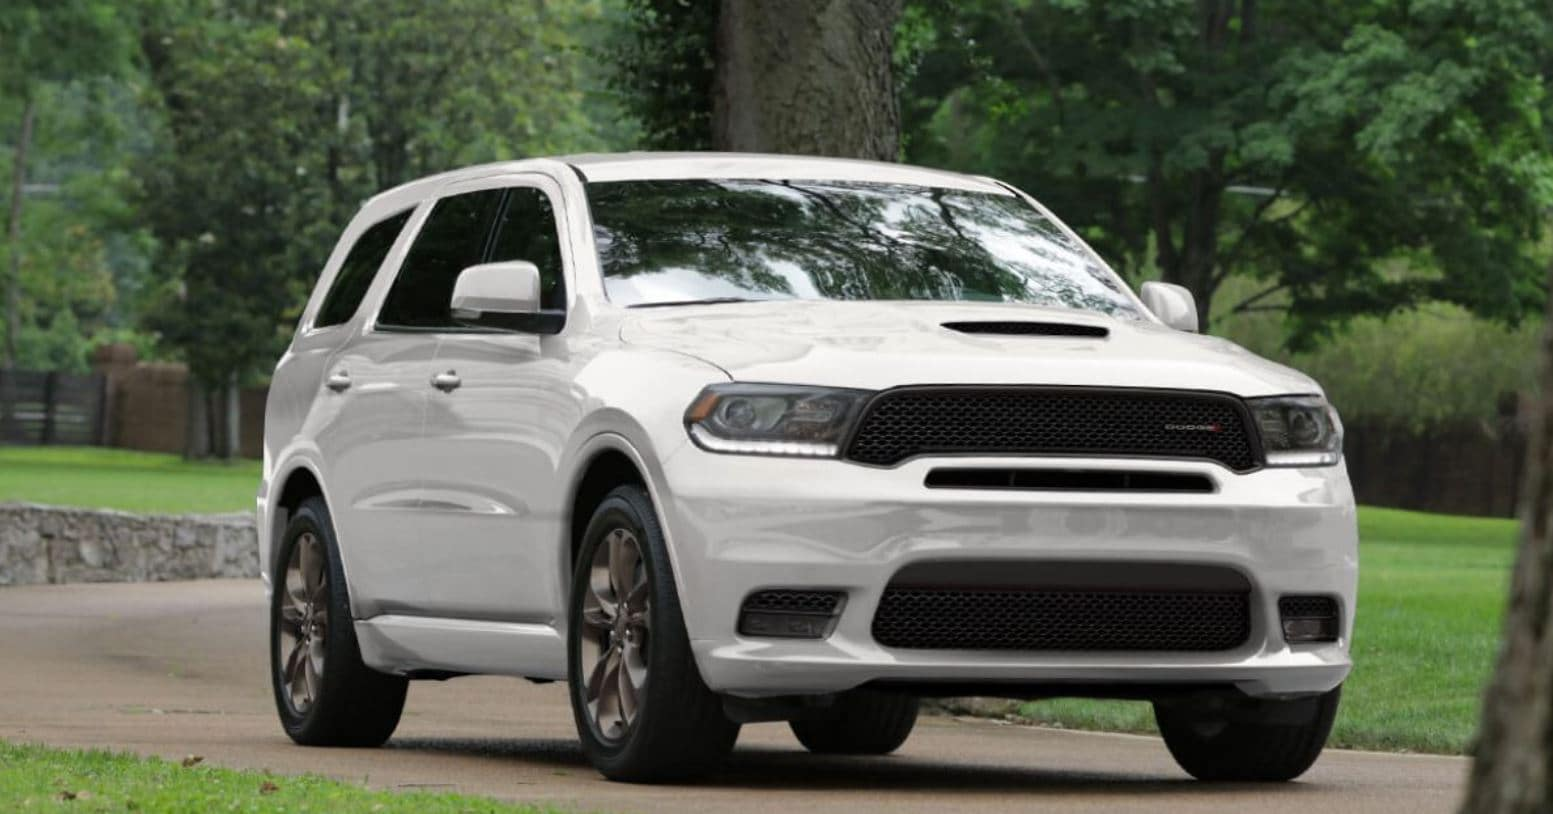 white dodge durango on narrow windy road surrounded by trees and cut grass on either side